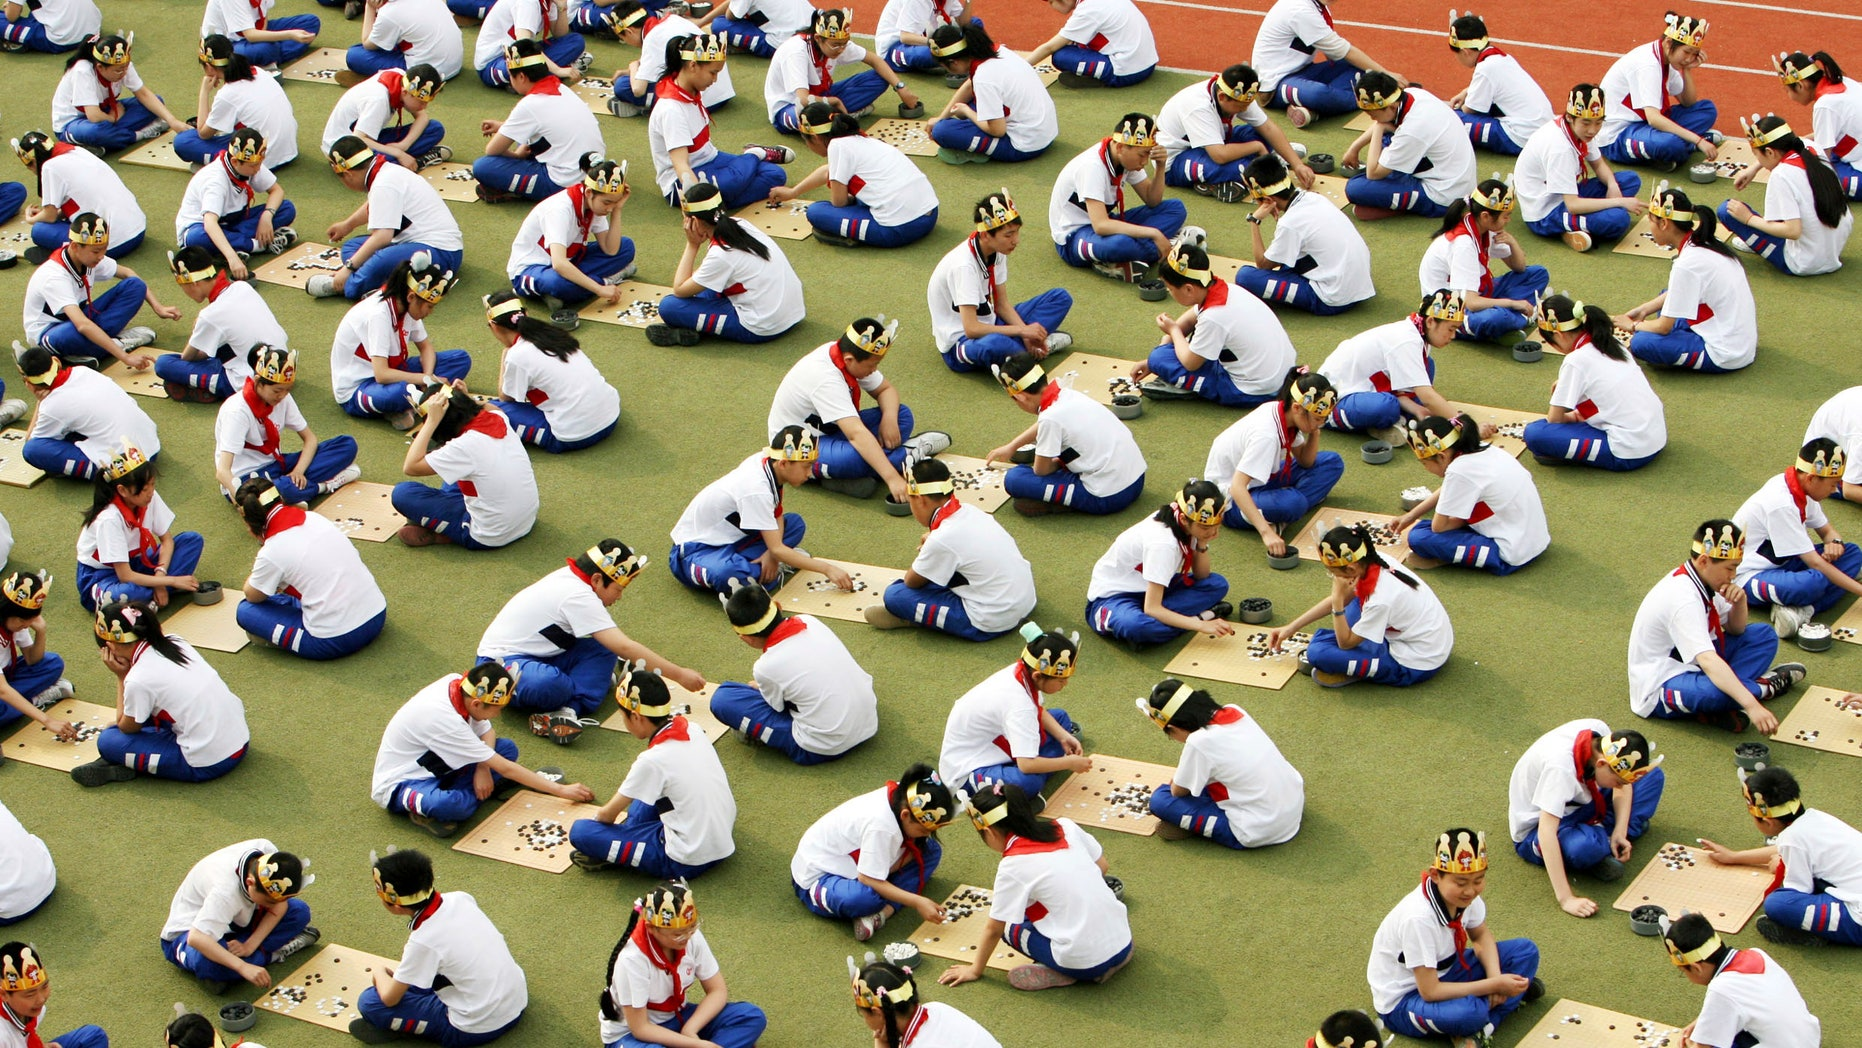 """Students play the board game """"Go"""", known as """"Weiqi"""" in Chinese, during a competition to mark the 100-day countdown to the opening of Beijing Olympics at a primary school in Suzhou, Jiangsu province. (REUTERS/China Daily)"""